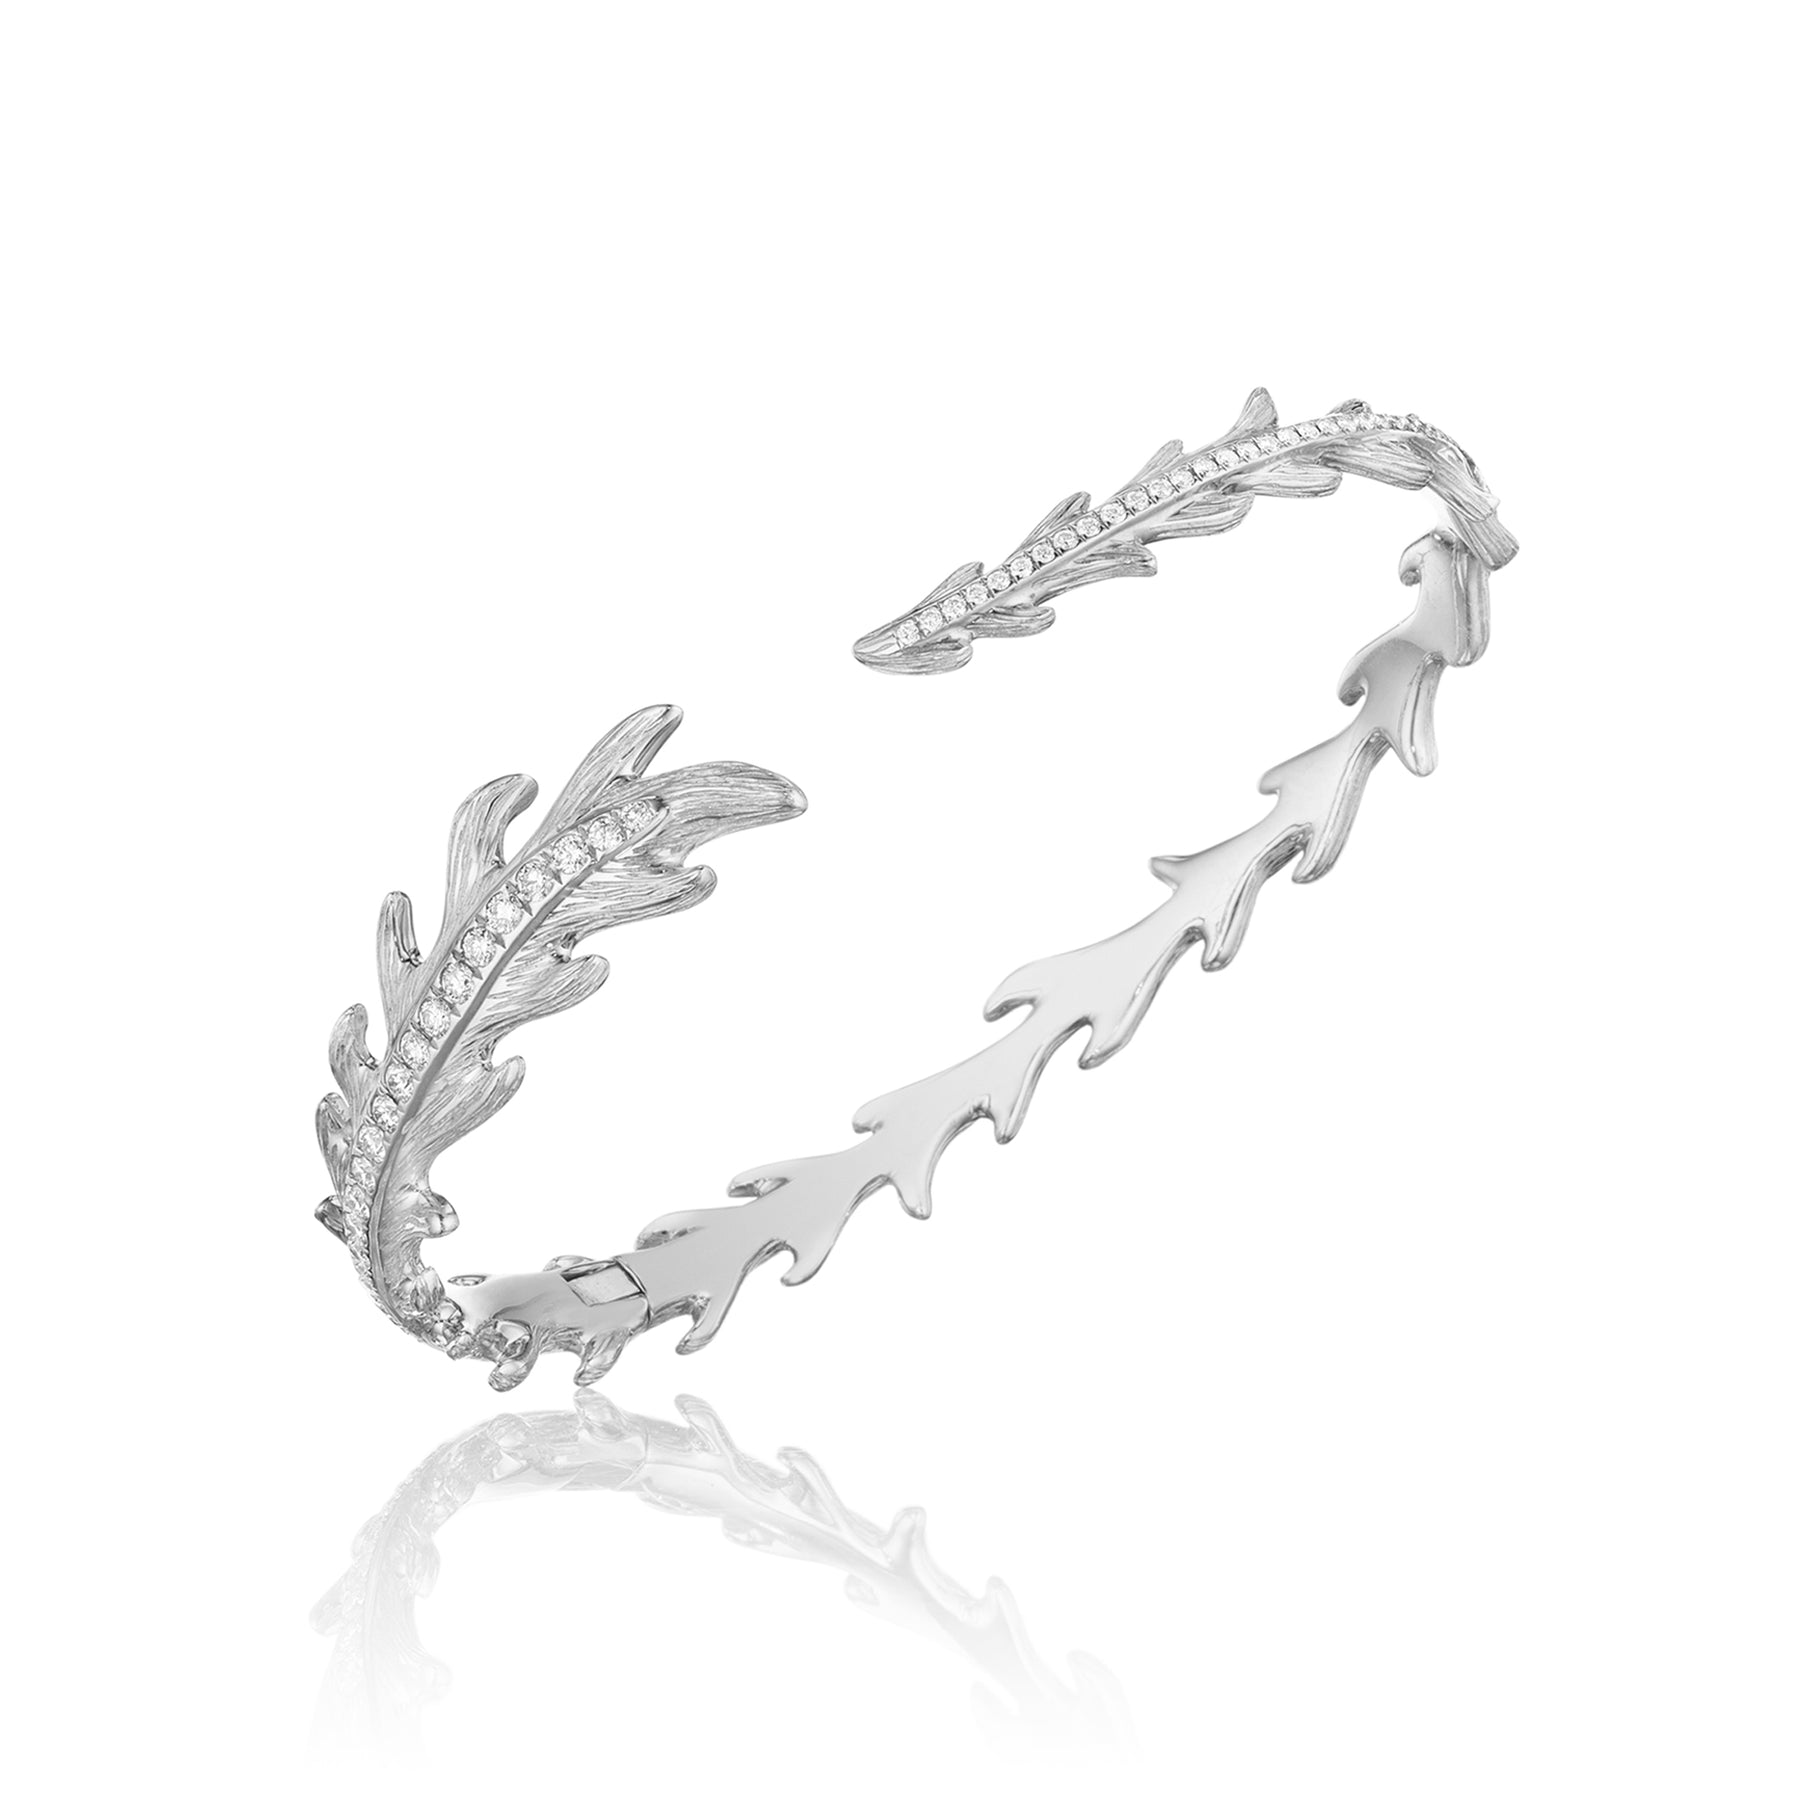 "Phoenix Feather Center Pav"" Cuff_18k White Gold"